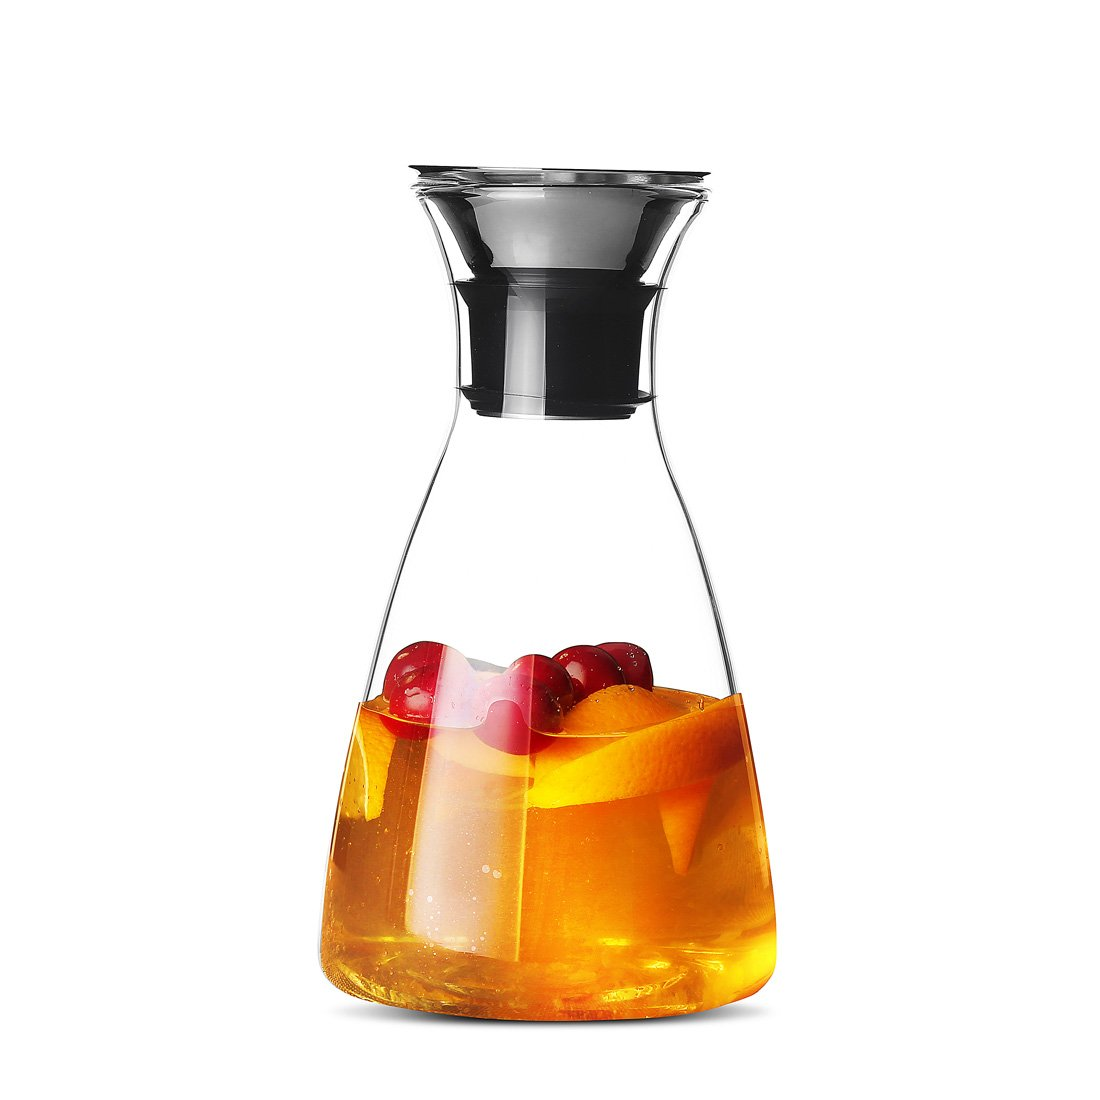 JIAQI 1 Litre Water Carafe Glass Pitcher with Stainless Steel Flow Lid, Borosilicate Water Jug for Hot/Cold Water, Coffee, Ice Tea, Juice Beverage, Decanting and Serving Wine QLYGYBL070